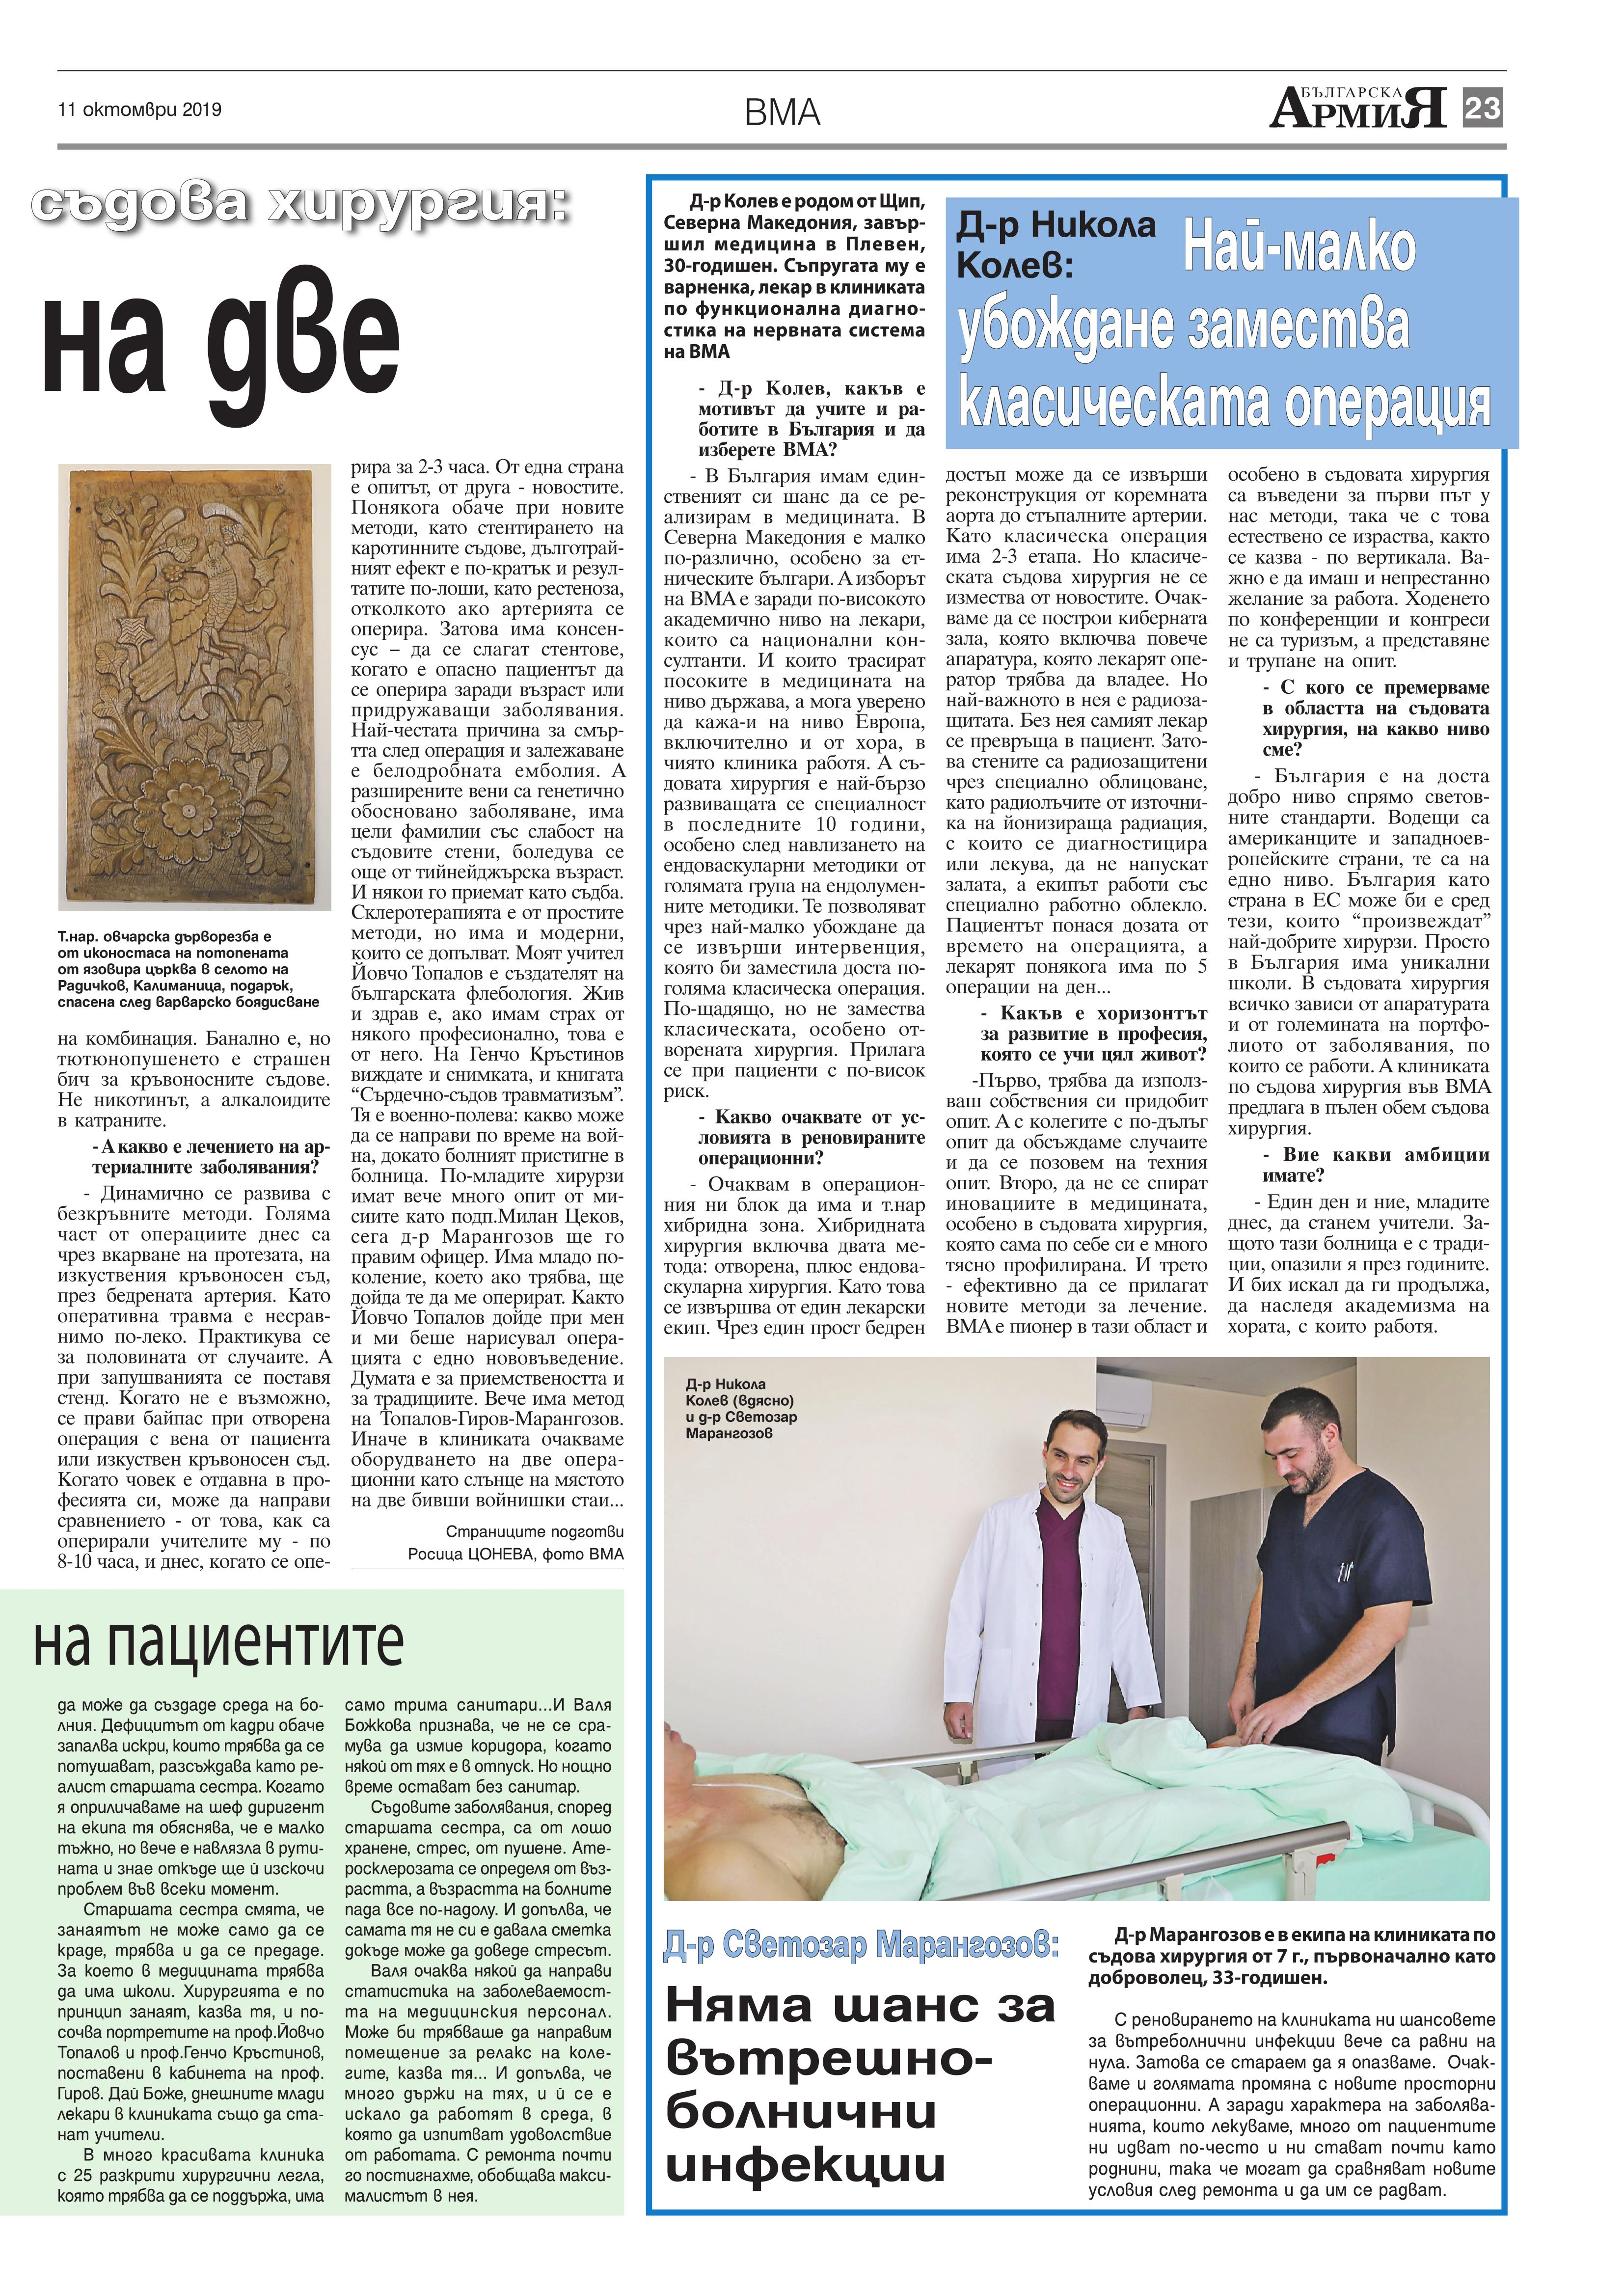 https://armymedia.bg/wp-content/uploads/2015/06/23.page1_-111.jpg